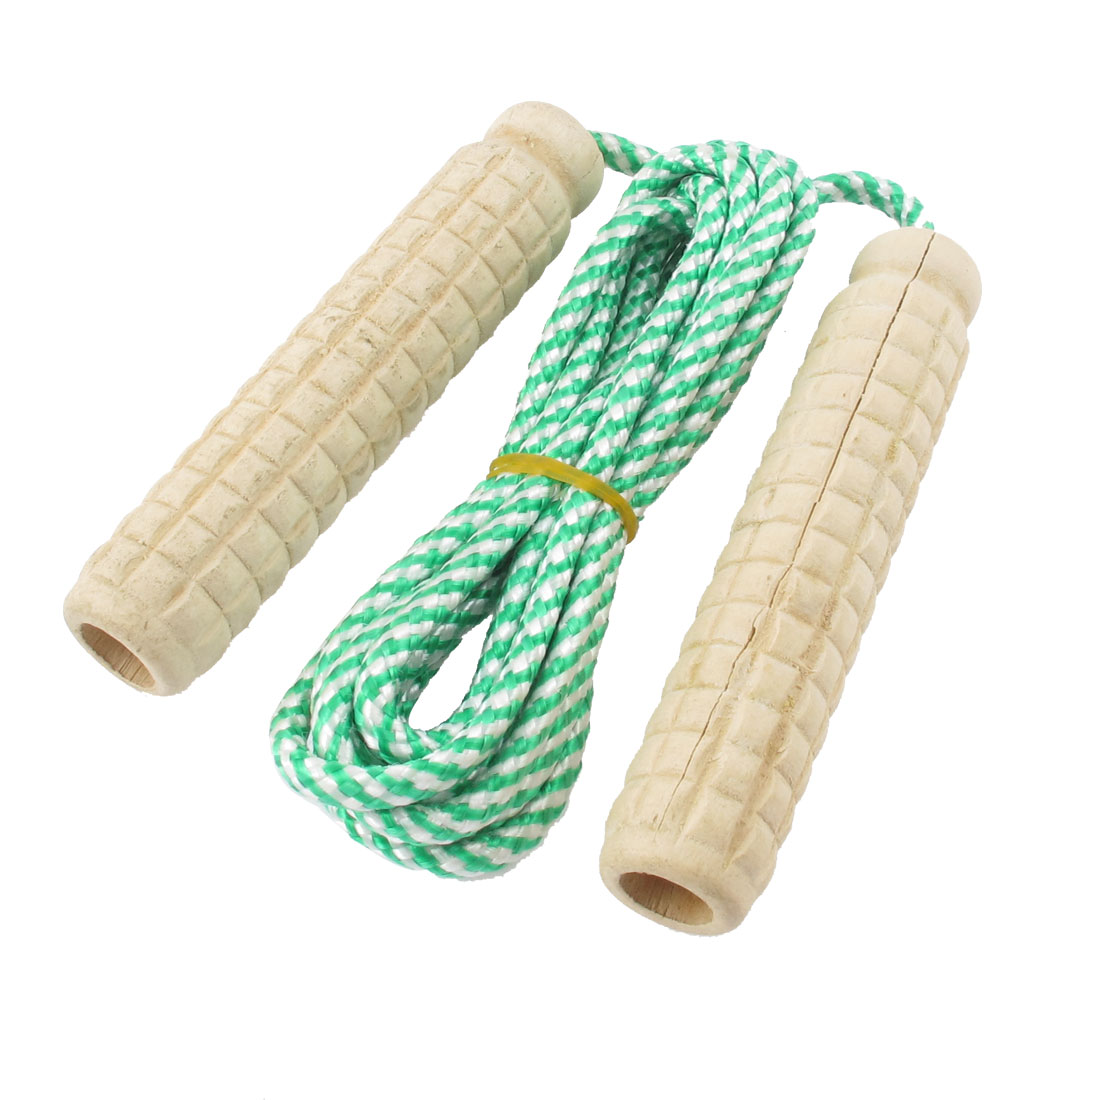 Green Nylon Stripe String Plastic Grip Jump Fitness Exercise Skipping Rope